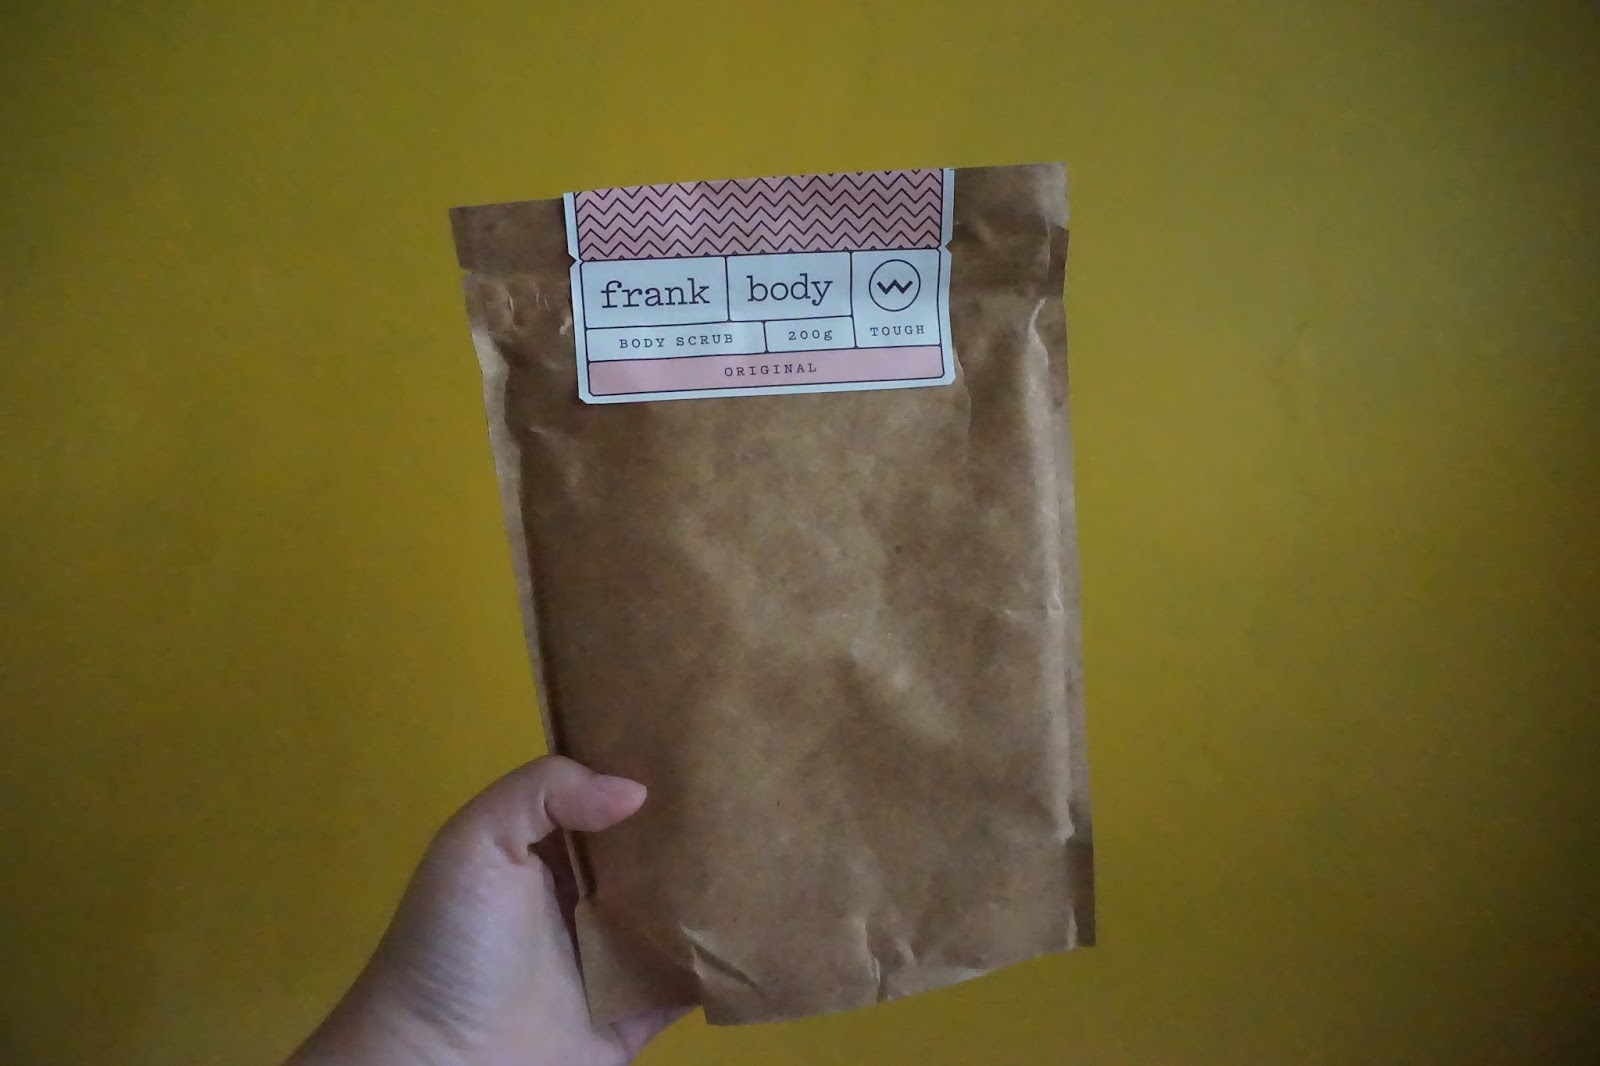 Discover Beauty With Putri Frank Body Scrub Review Tcash Lebaran April Skin Magic Snow Cushion Frankbody Original Coffee Is Packed Sweet Almond Oil Orange Essence Vitamins And Minerals To Target Dry Stretch Marks Cellulite Eczema